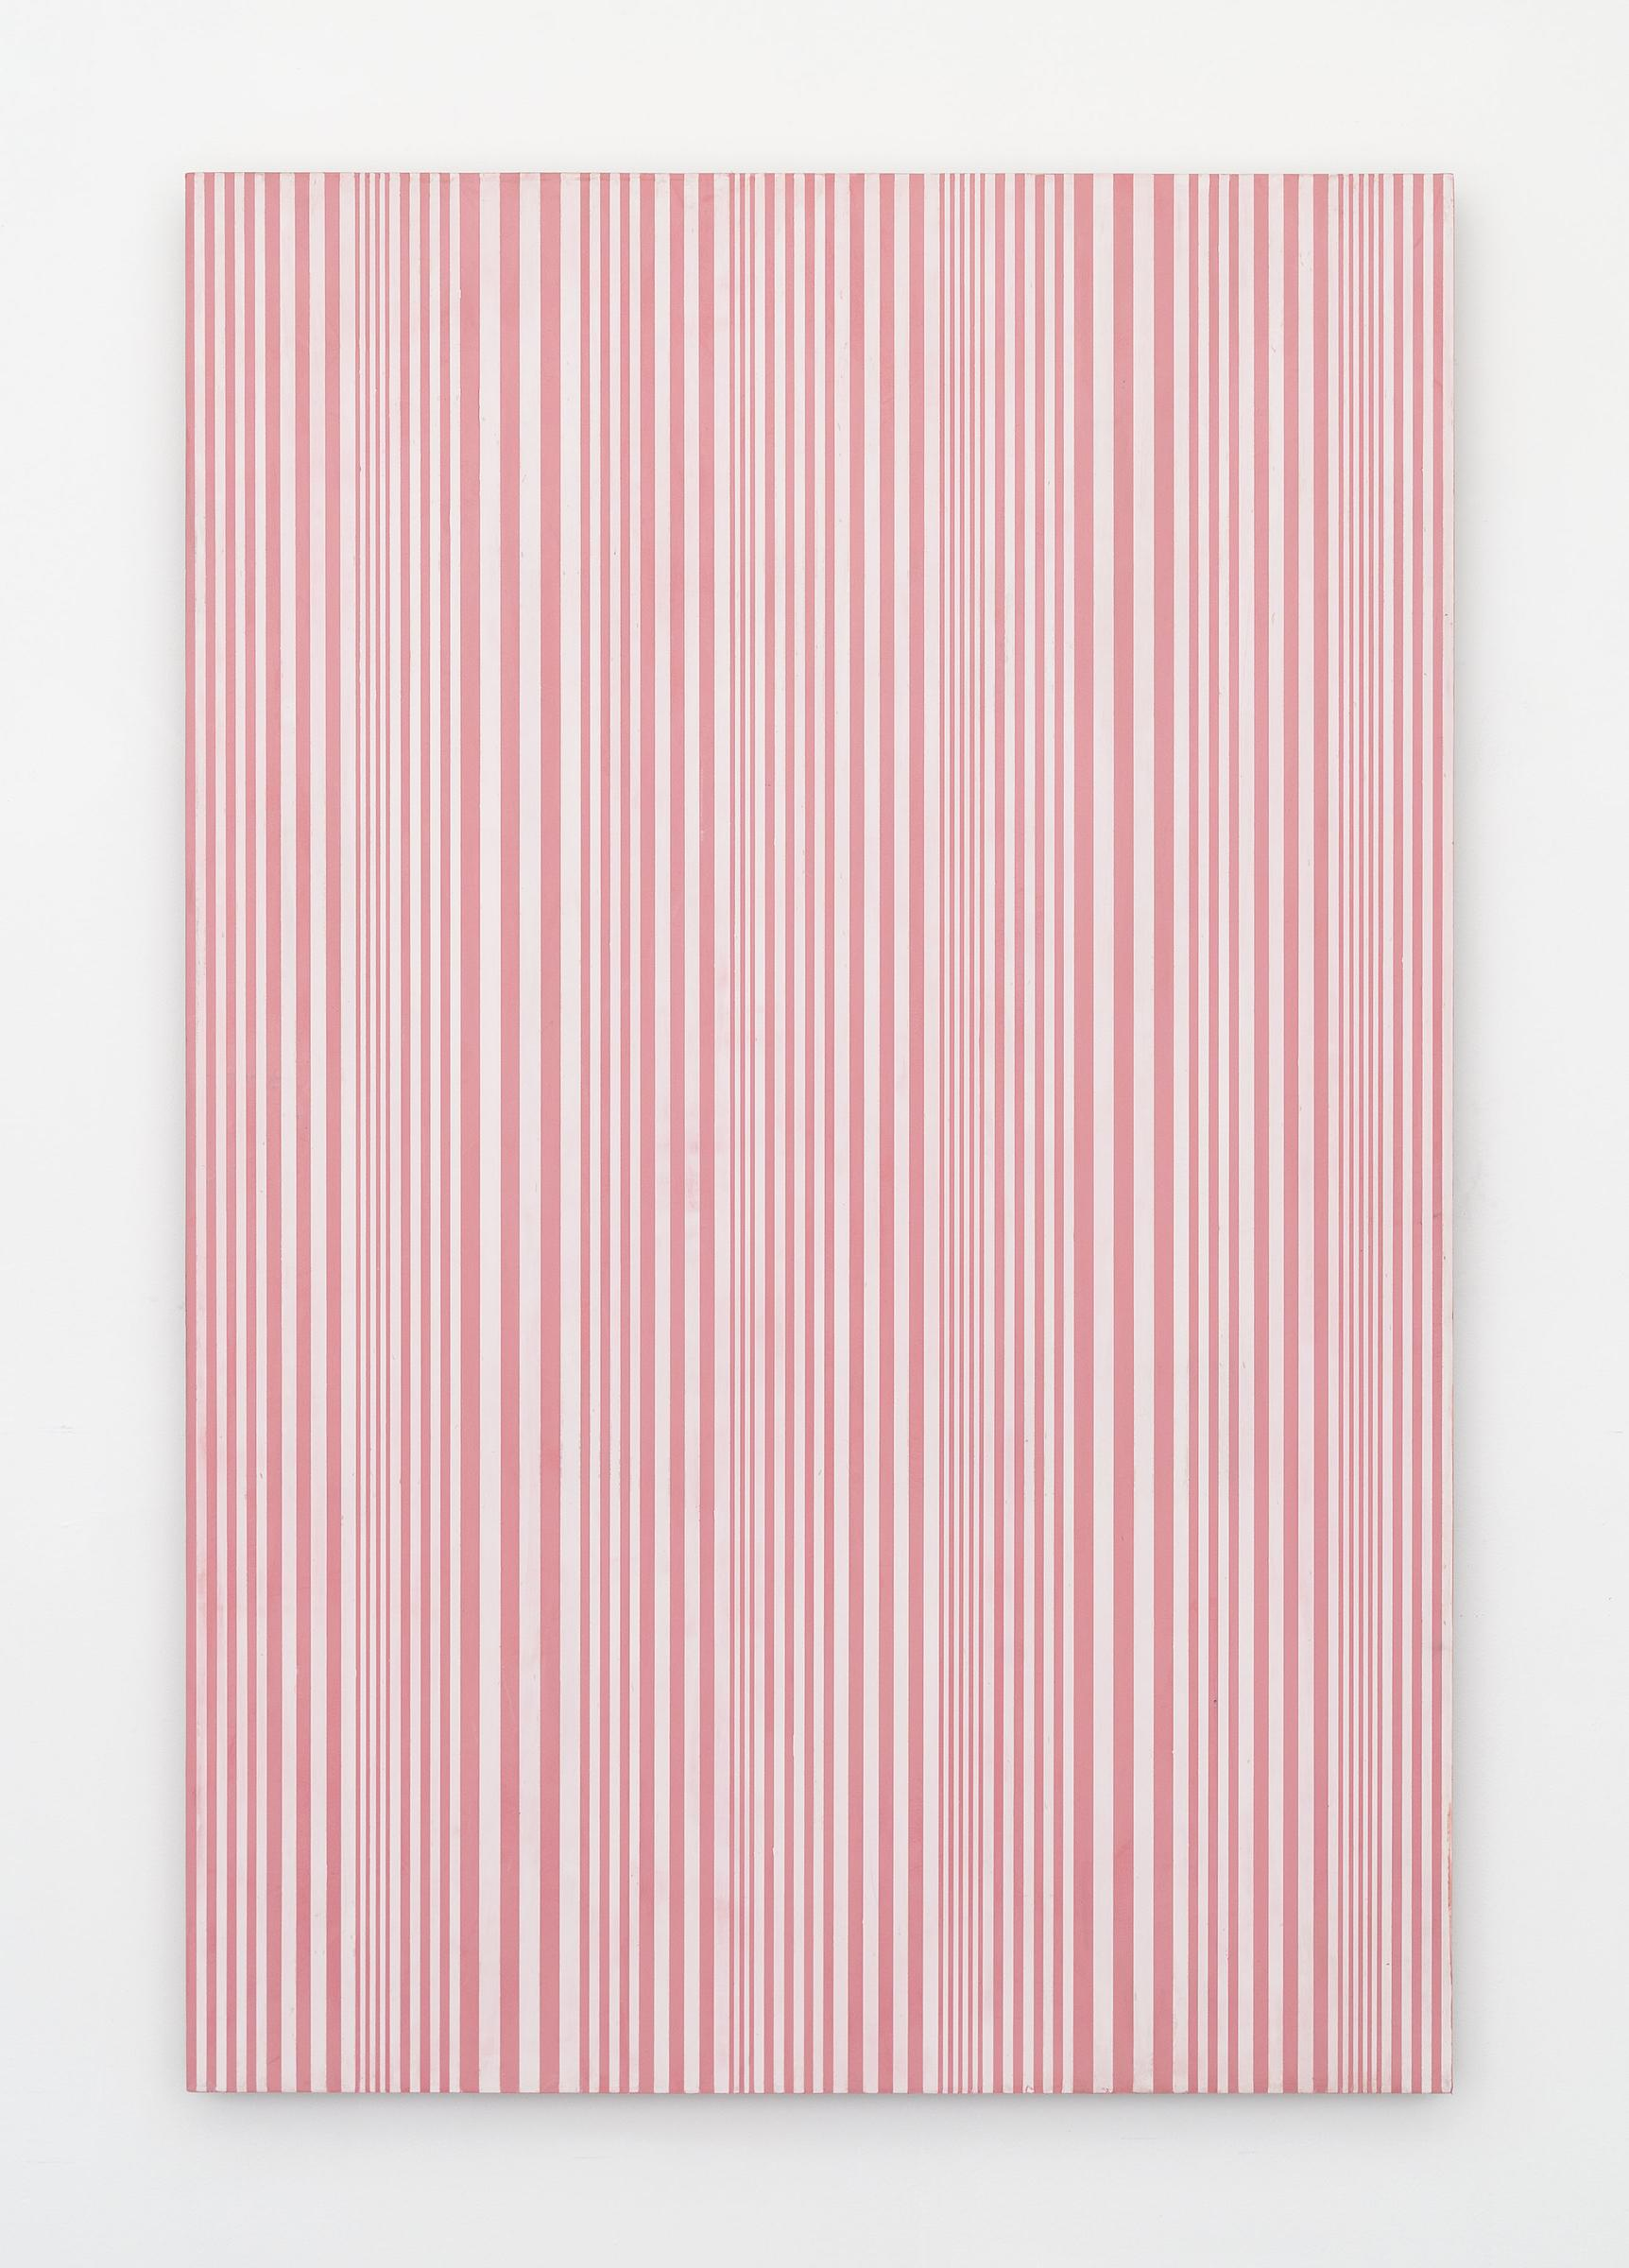 Untitled (#58), 2015 enamel on aluminum 48 x 32 inches